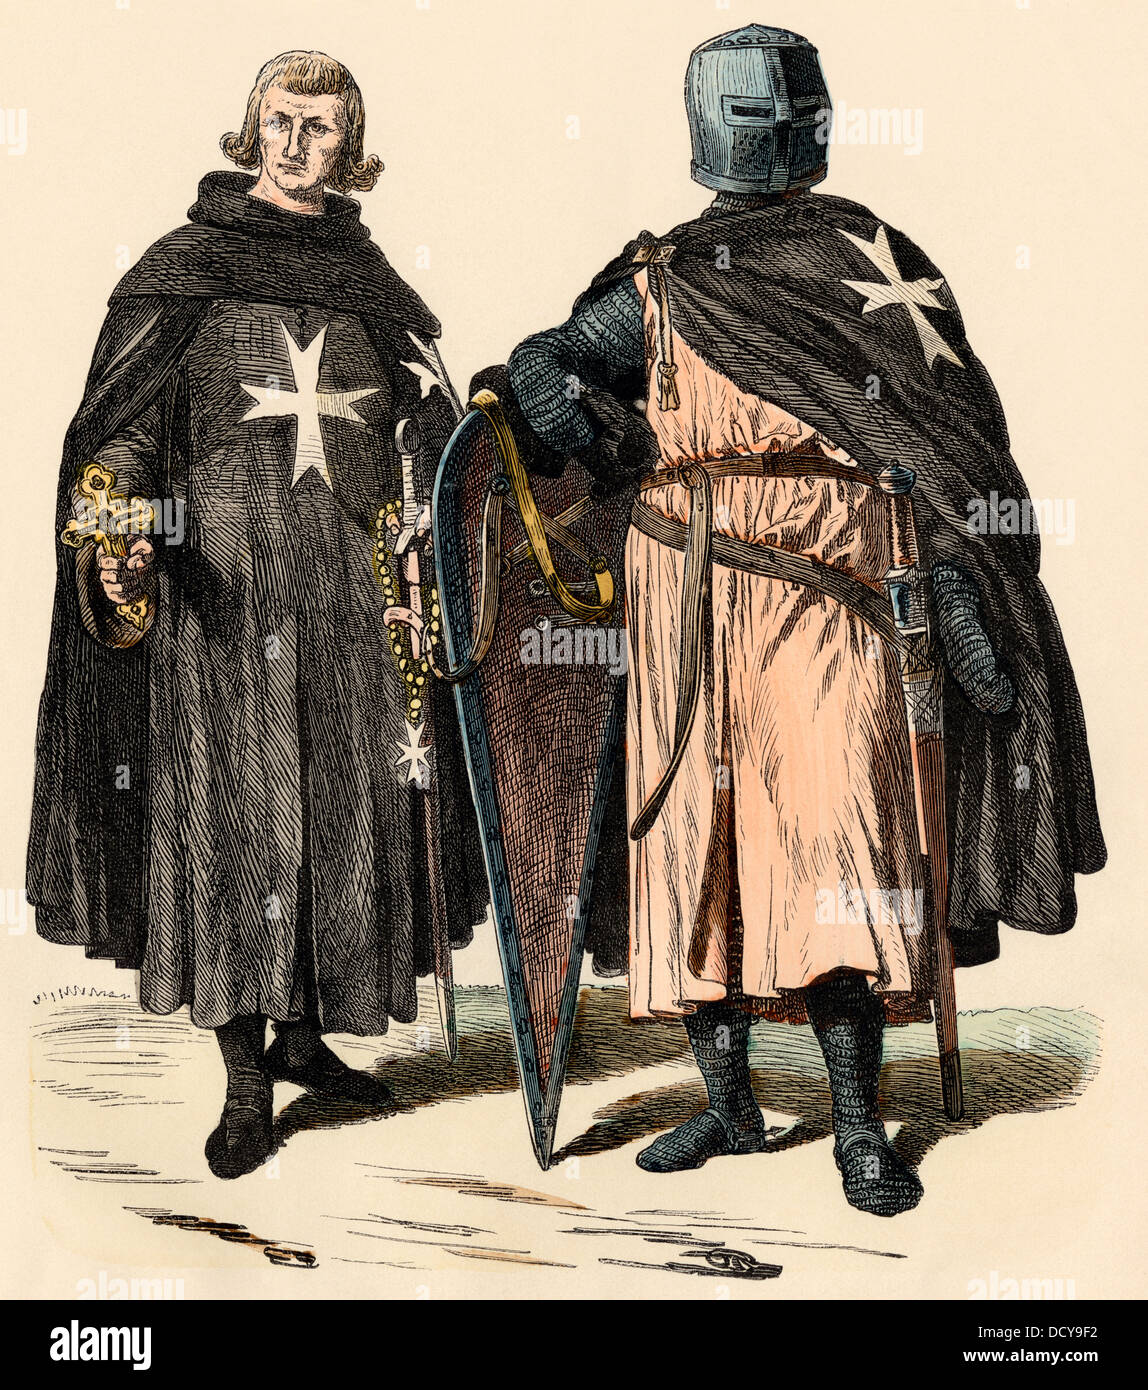 Knights Hospitaller during the Crusades, later known as knights of Malta. Hand-colored print - Stock Image